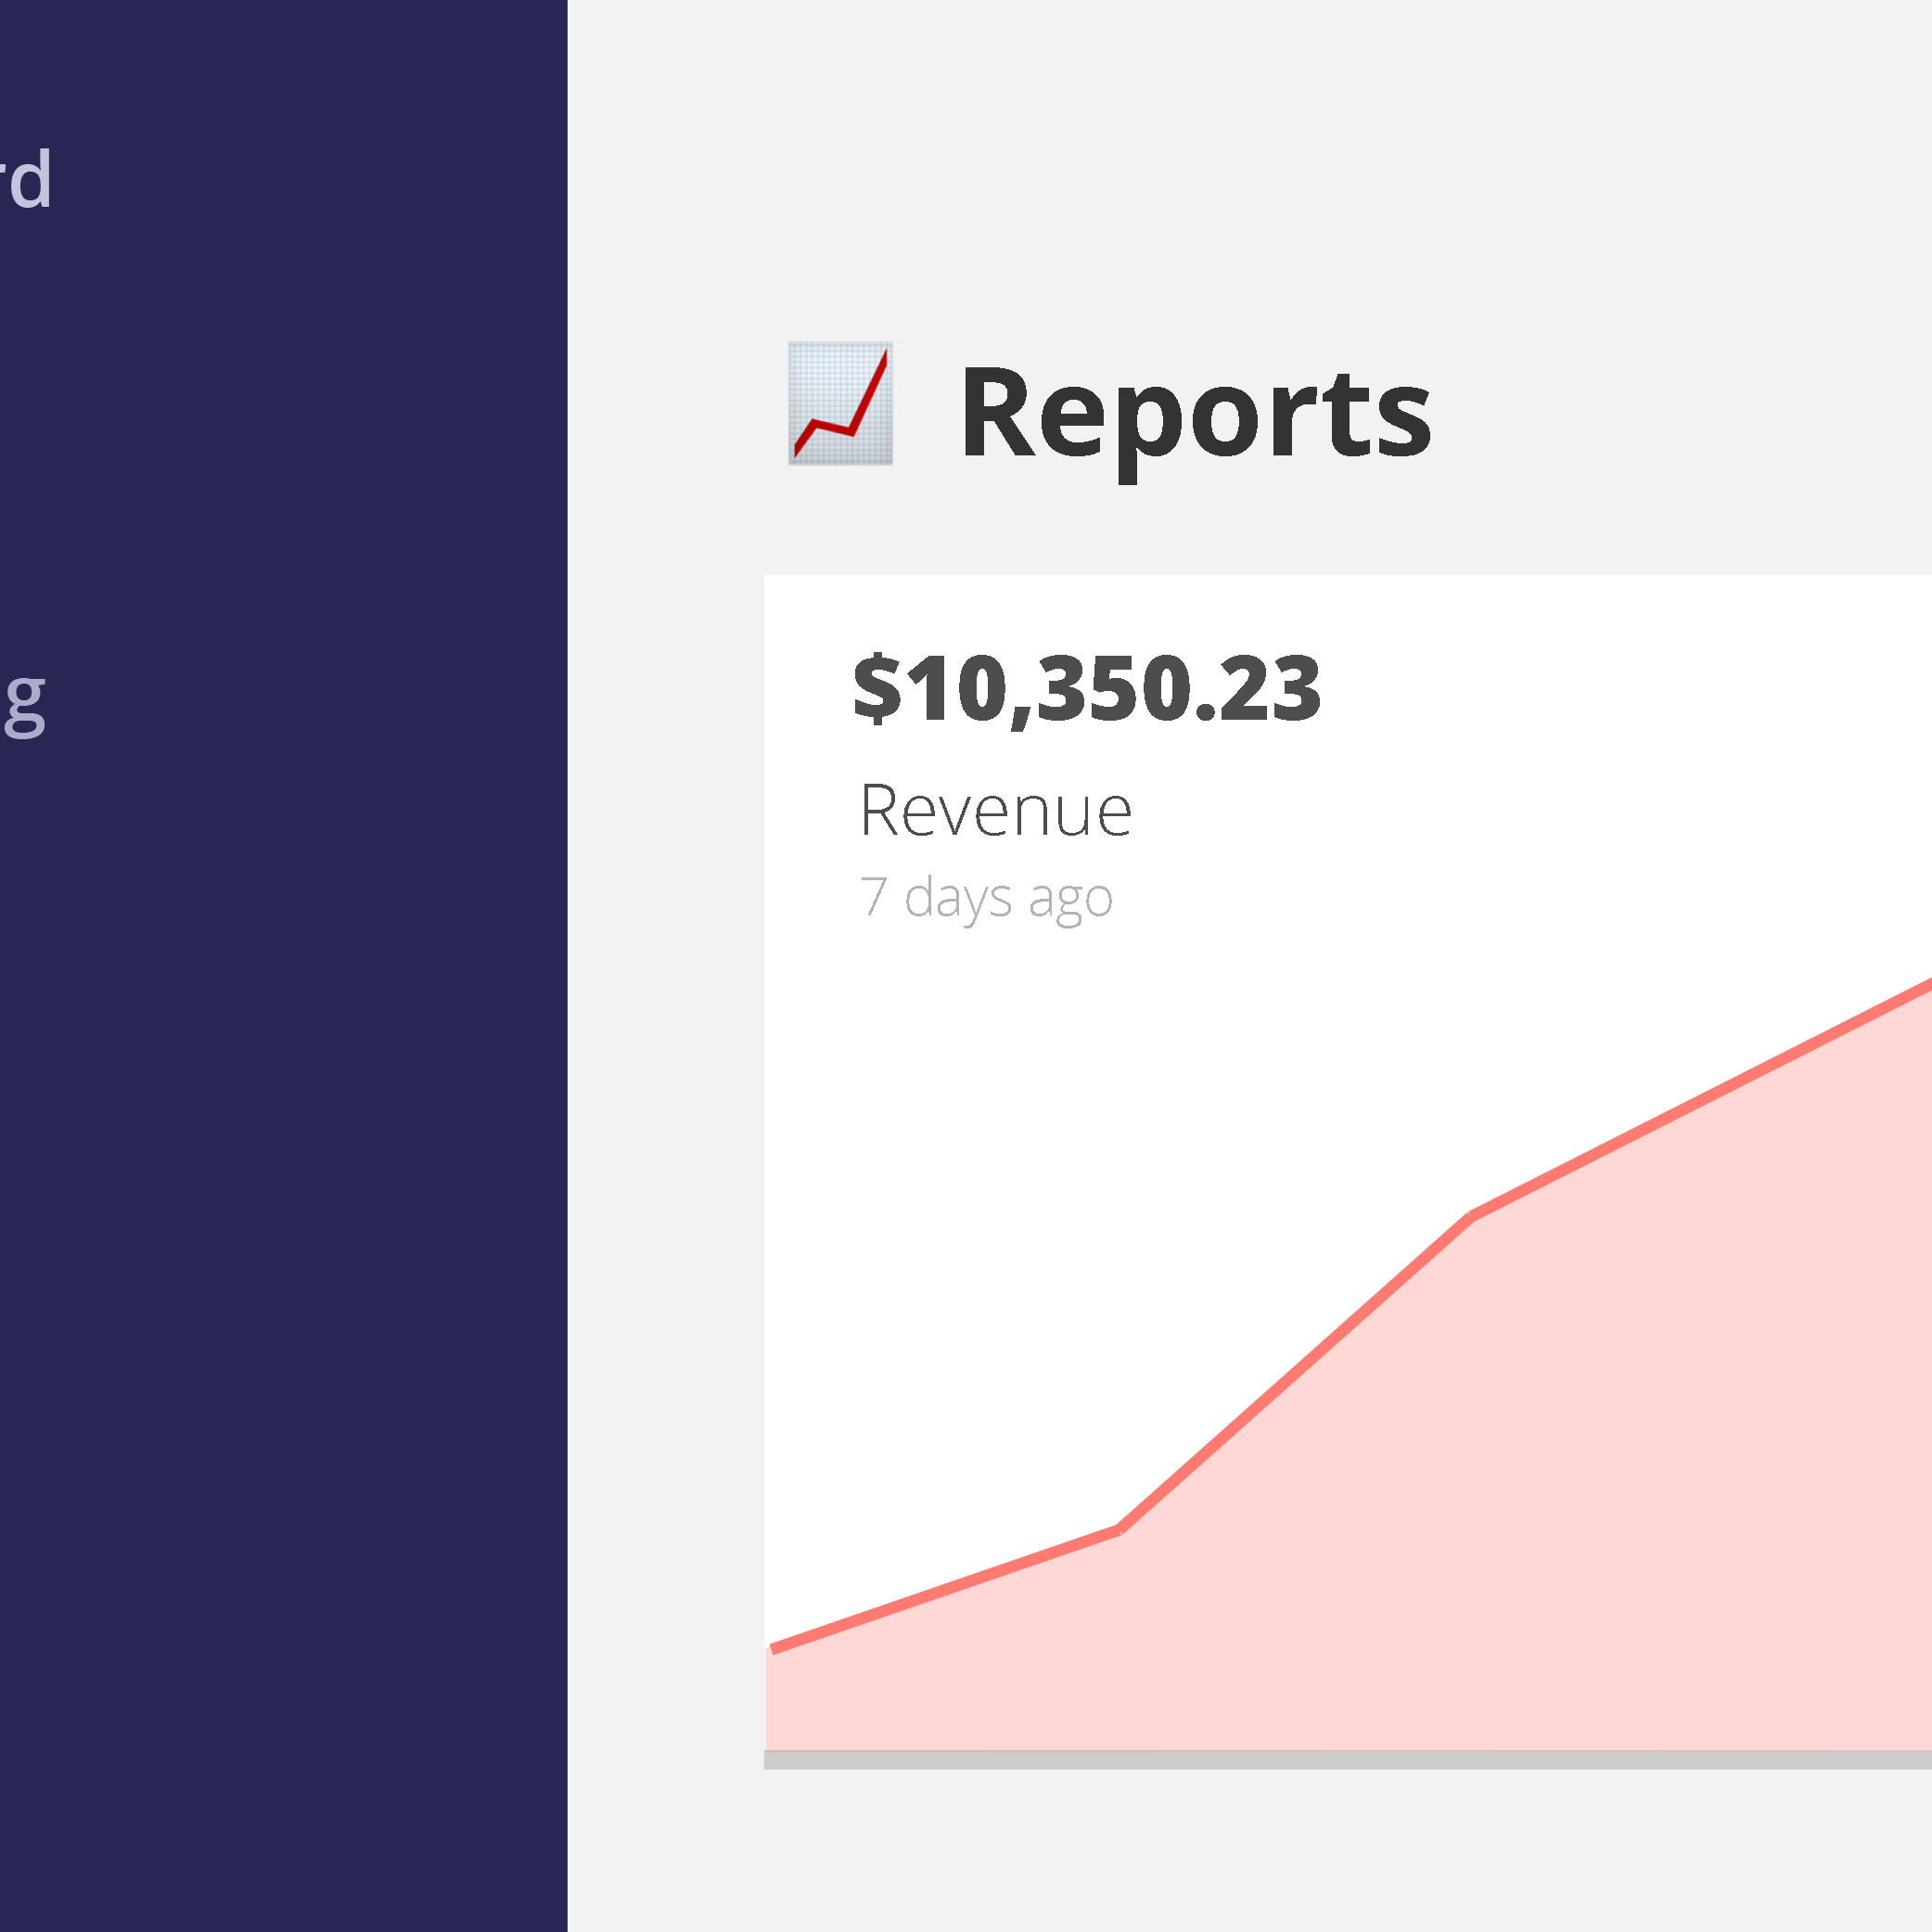 analytics features: reports